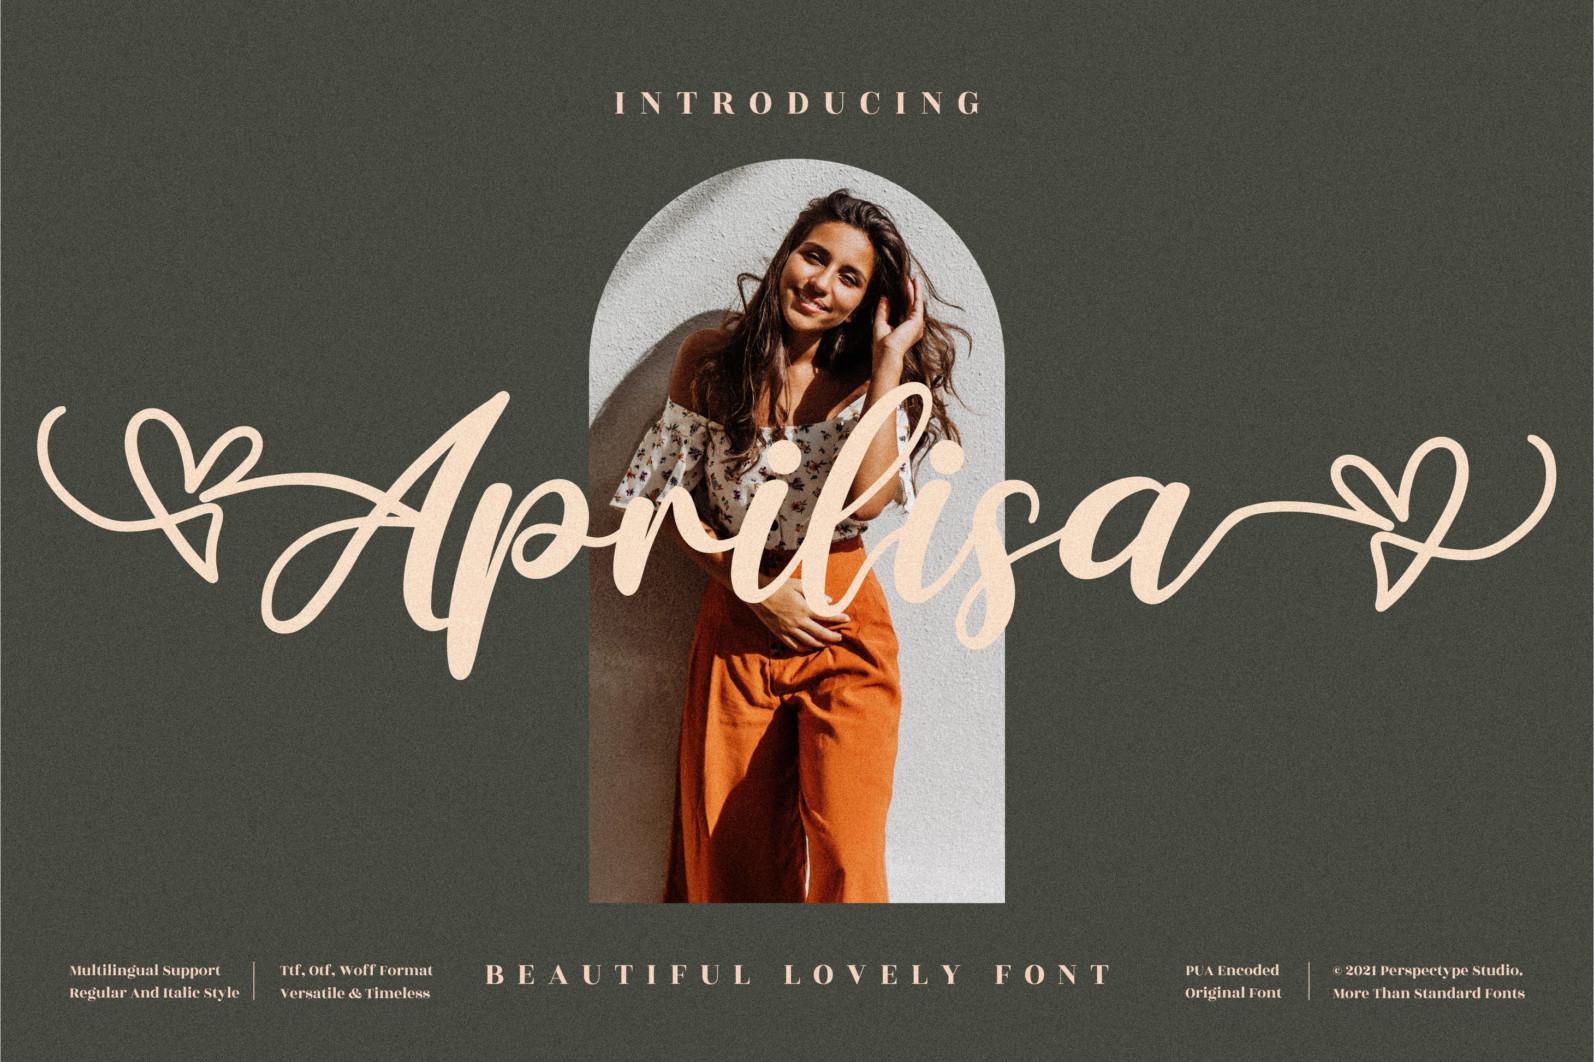 Love love Font Bundle from Perspectype Studio - 27 1 scaled -